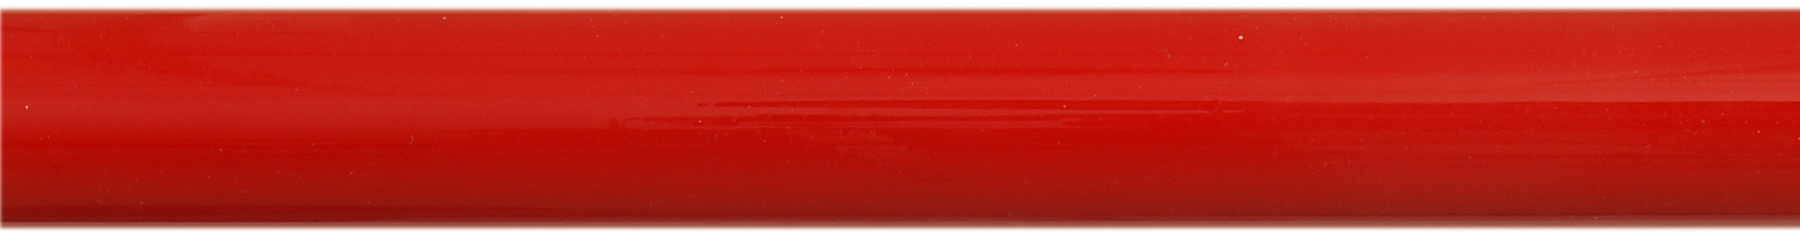 Intense Red Tube Sample